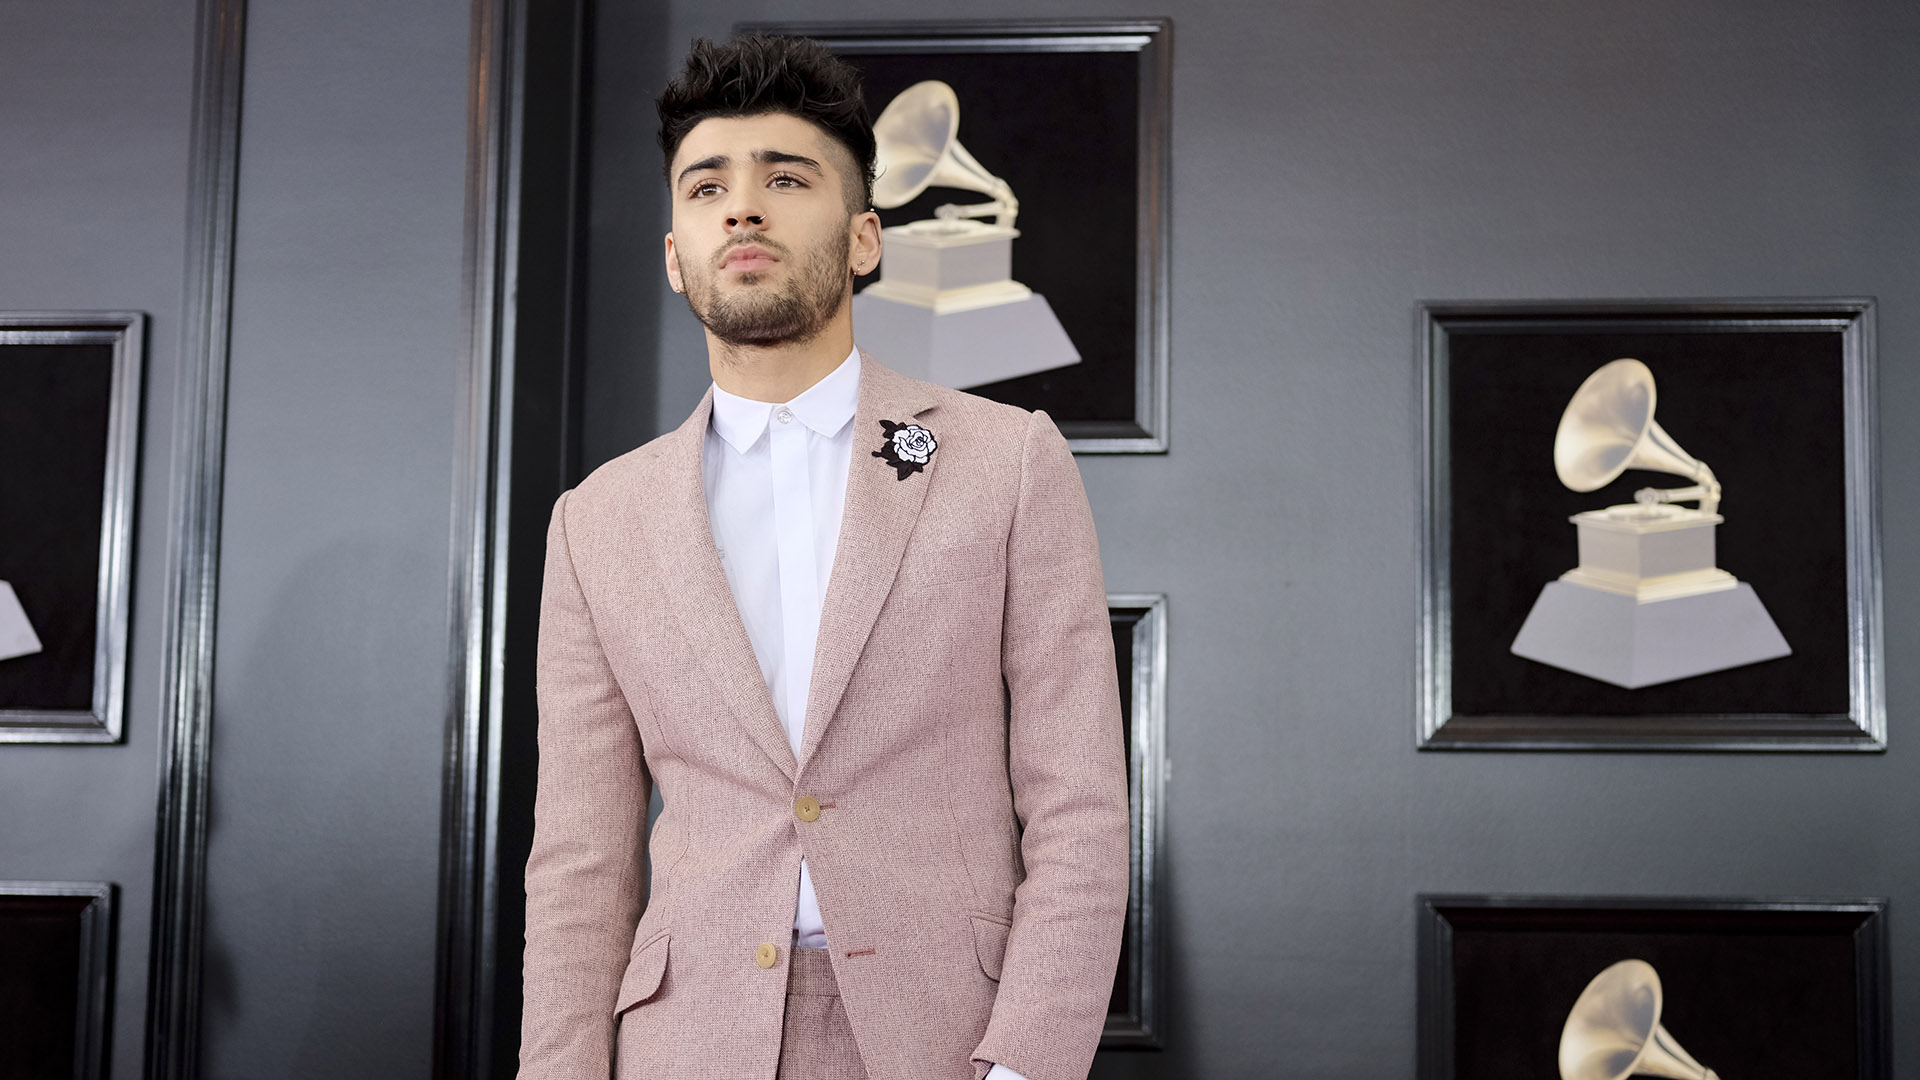 Zayn Malik stopped by to give his best model pose while wearing a pink suit accentuated with a white rose stitched on the lapel.